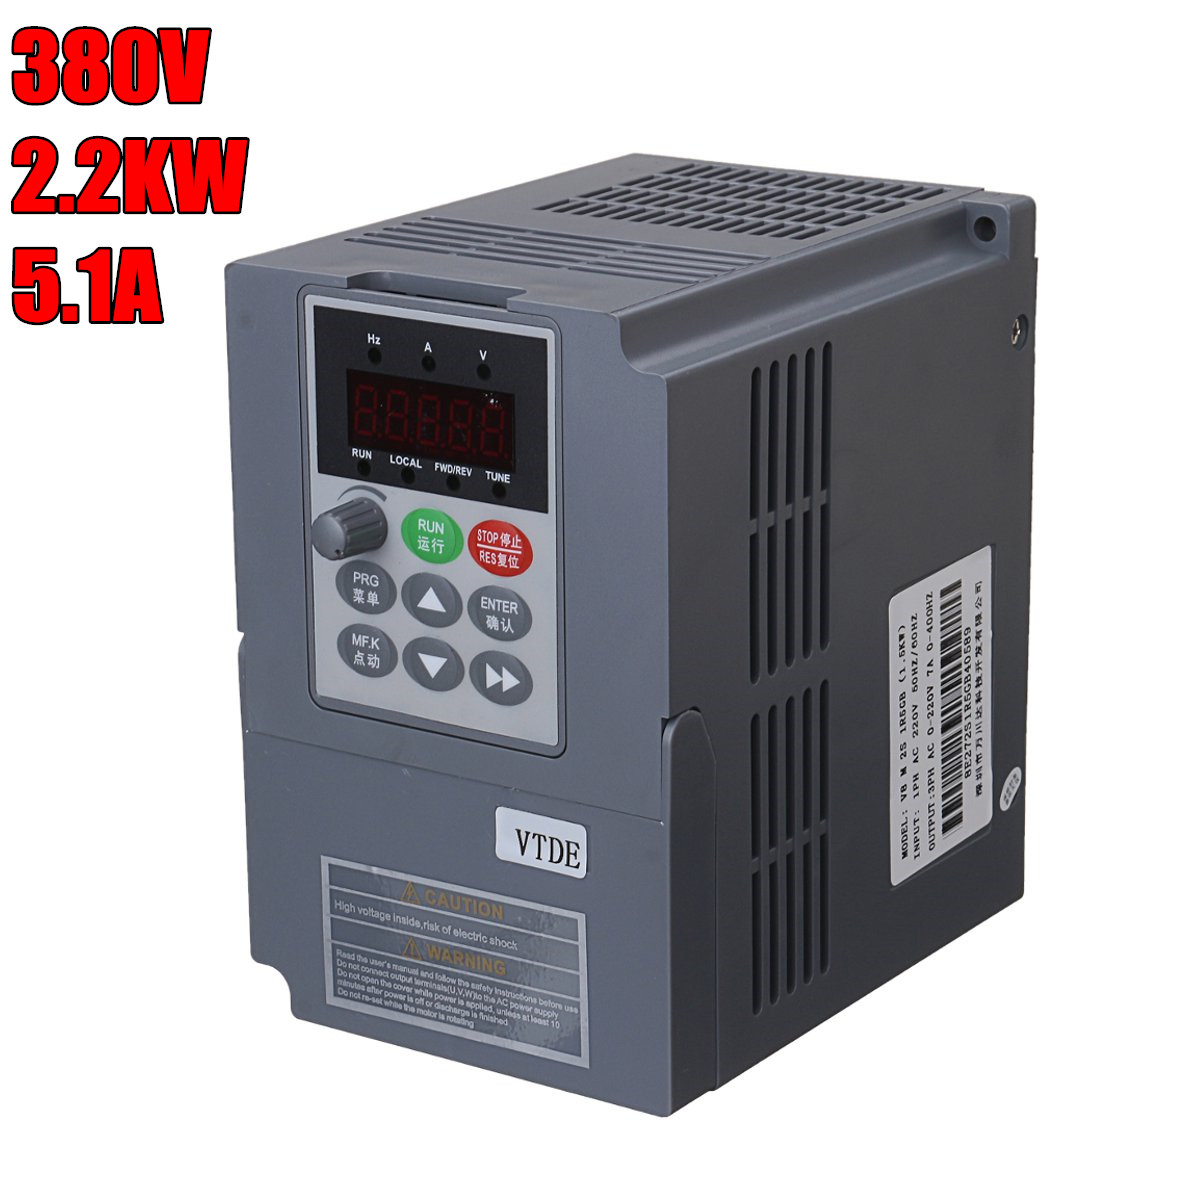 цена на 380v 2.2kw CNC Spindle motor speed control VFD Variable Frequency Drive VFD 3PH Input 3PH frequency Drive inverter for motor